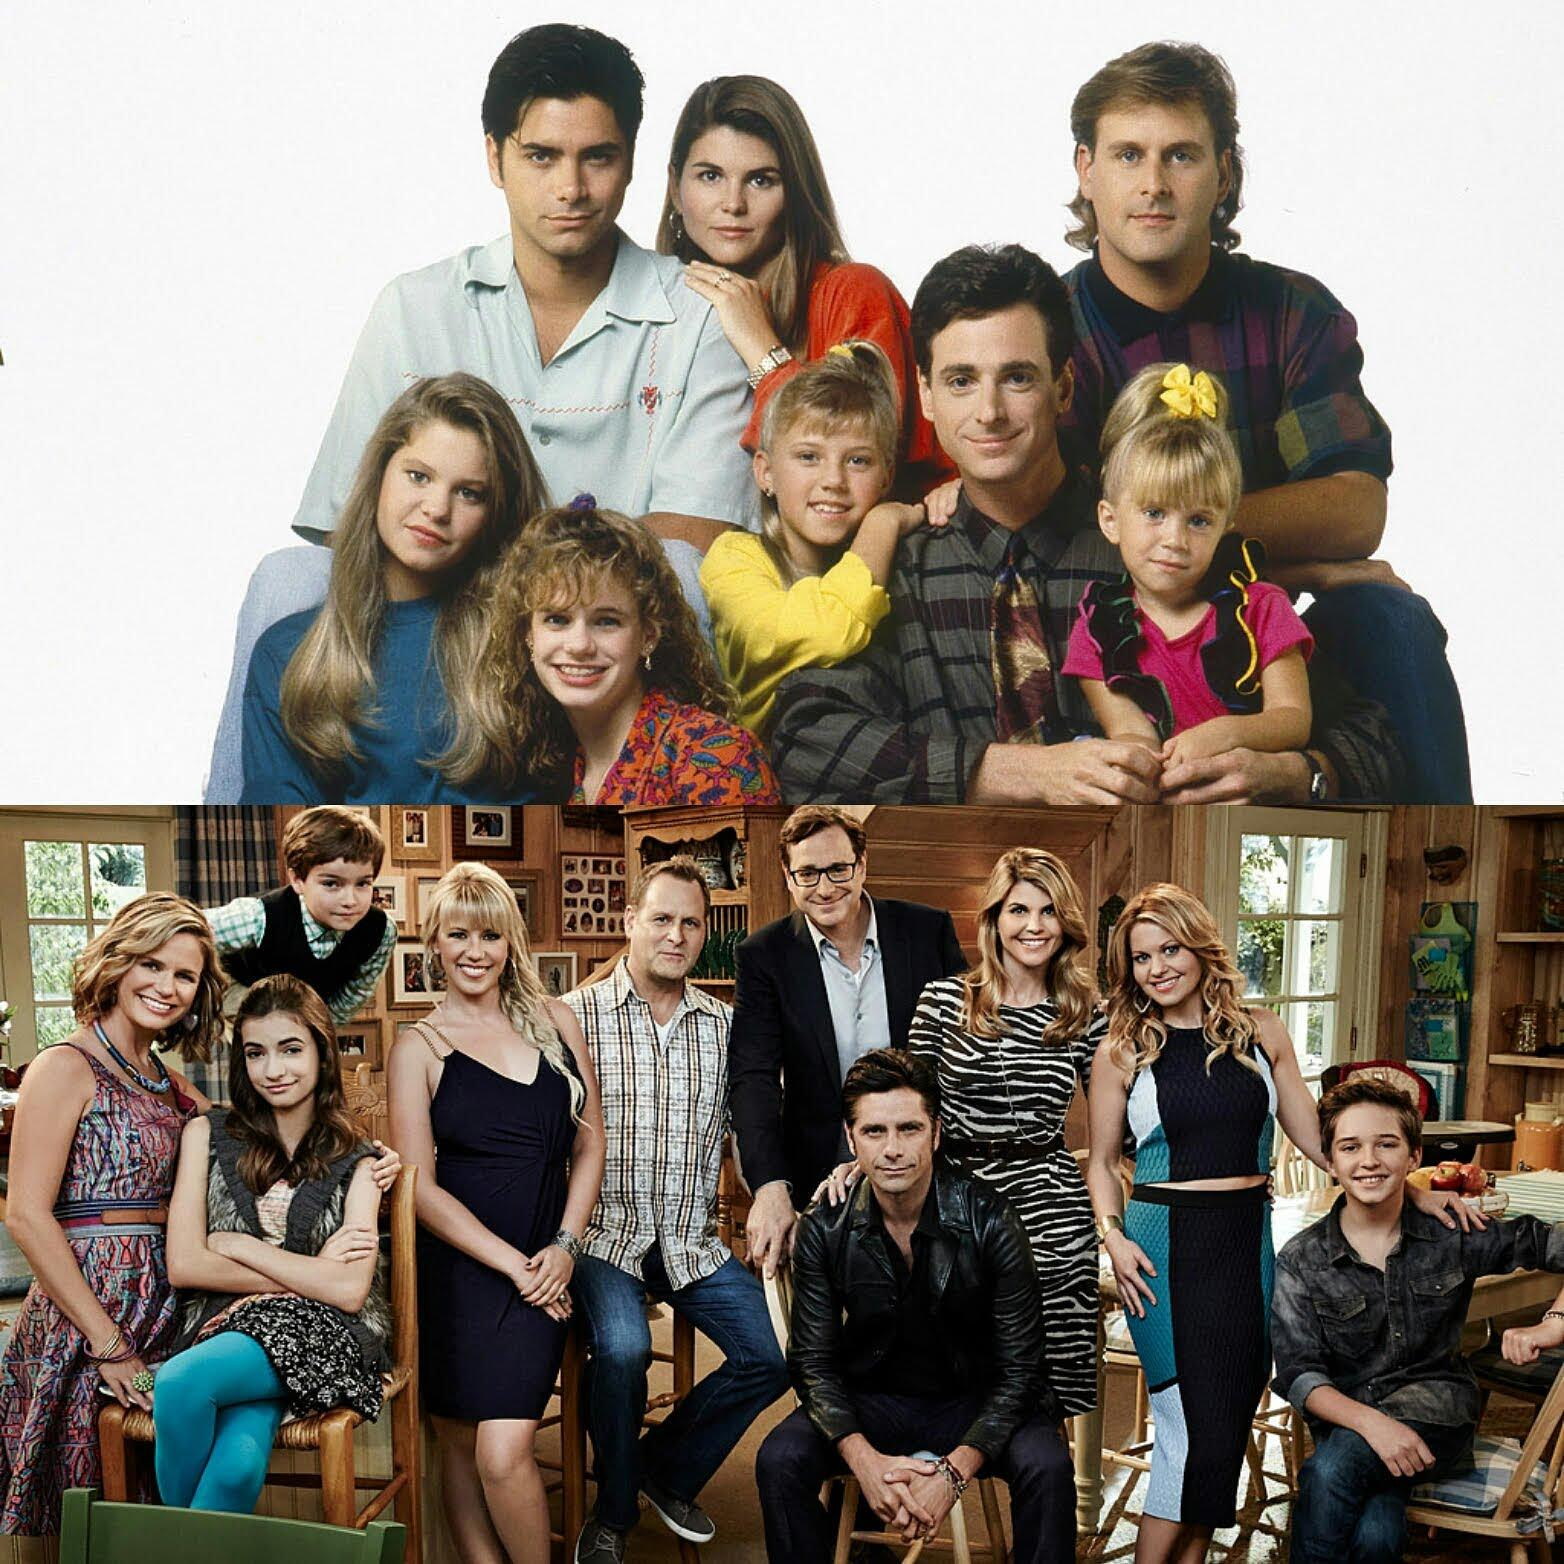 The cast of Full House vs. the case of Fuller House